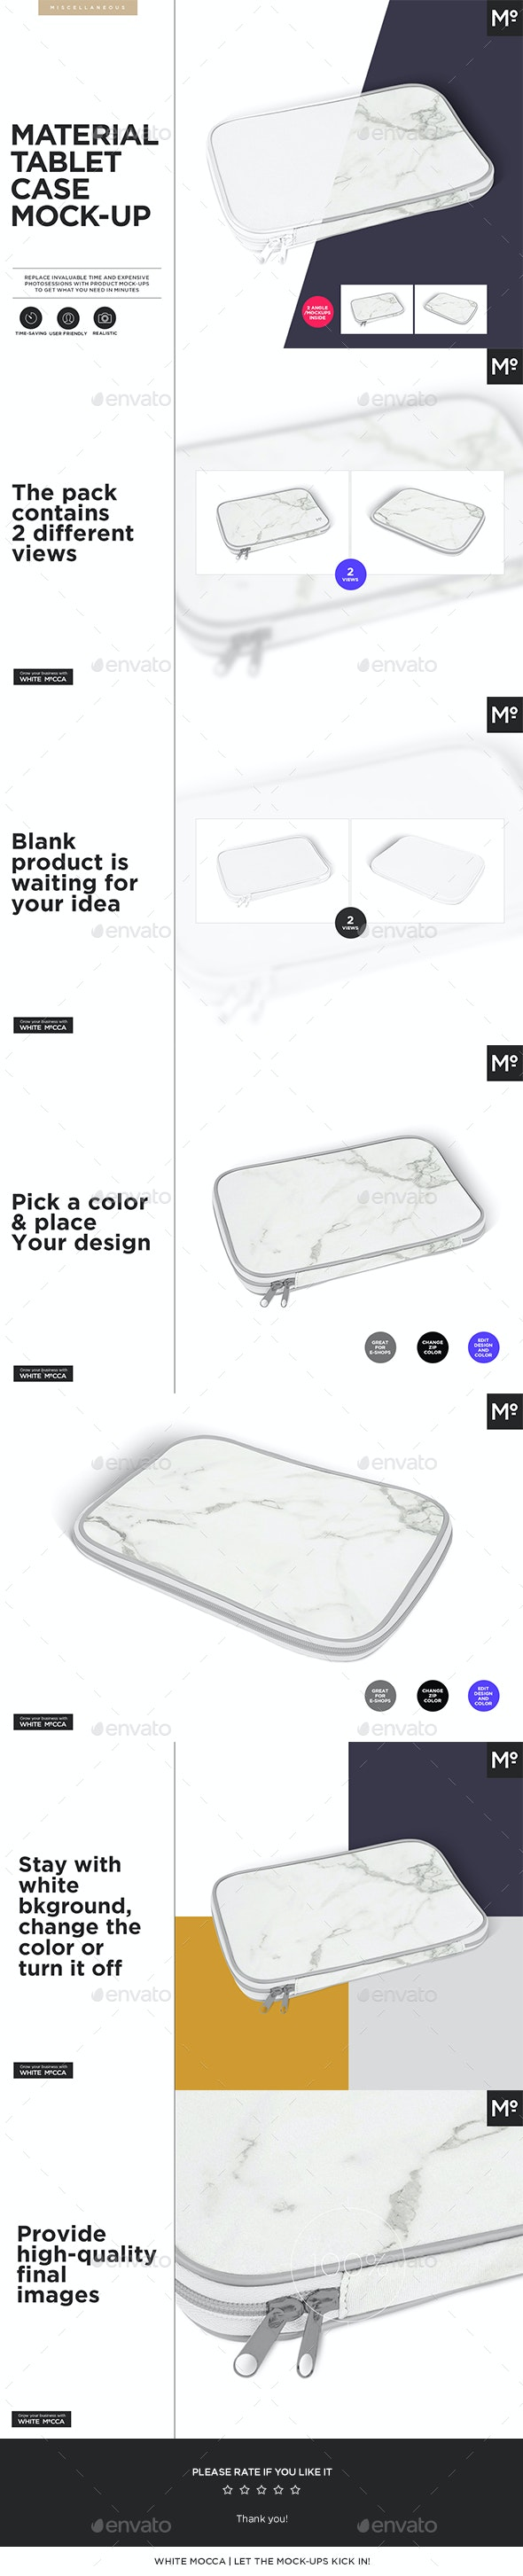 Tablet Material Case Cover Mock-up - Miscellaneous Packaging